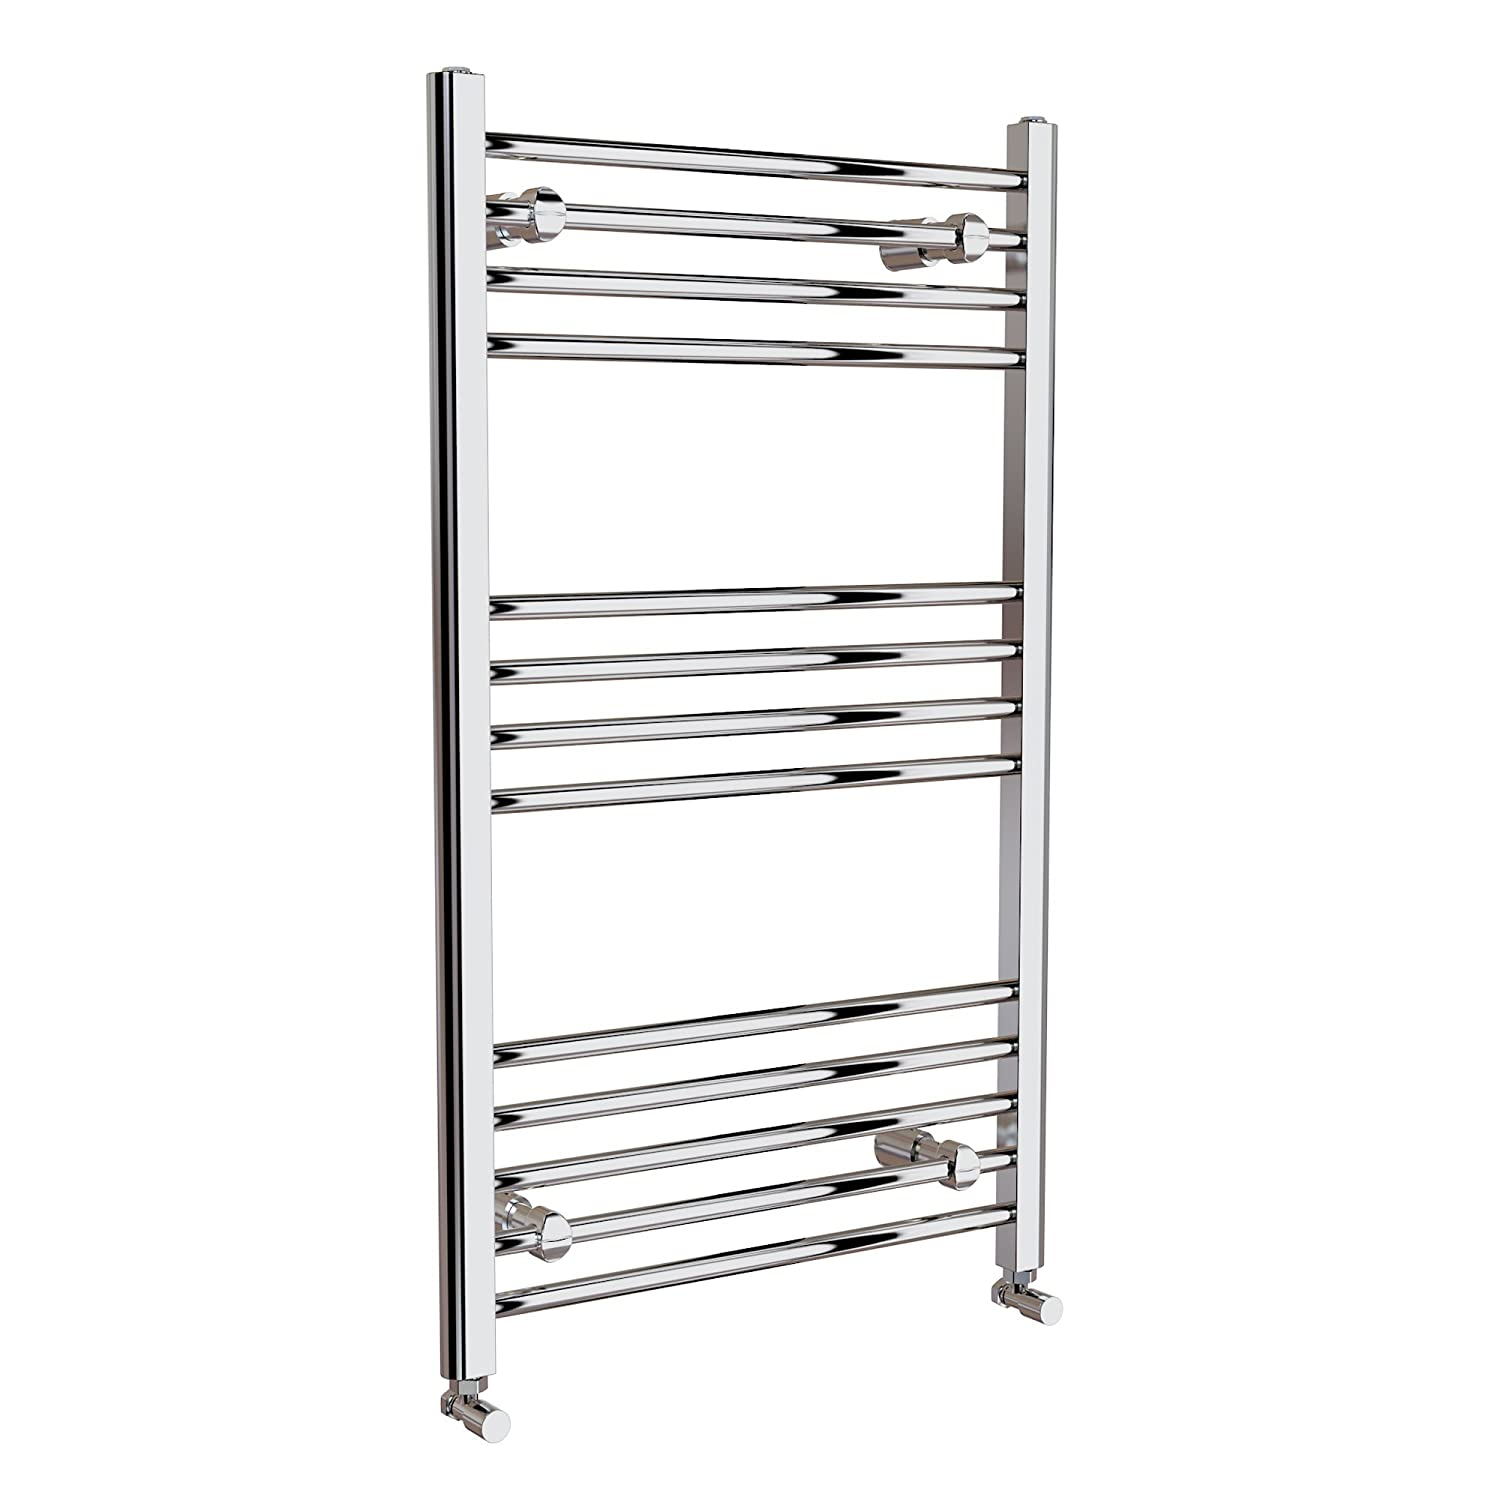 Natasha ladder rail straight modern electric towel radiator in chrome - Ibathuk 1000 X 500 Thermostatic Electric Heated Towel Rail Bathroom Radiator Ibathuk Amazon Co Uk Diy Tools